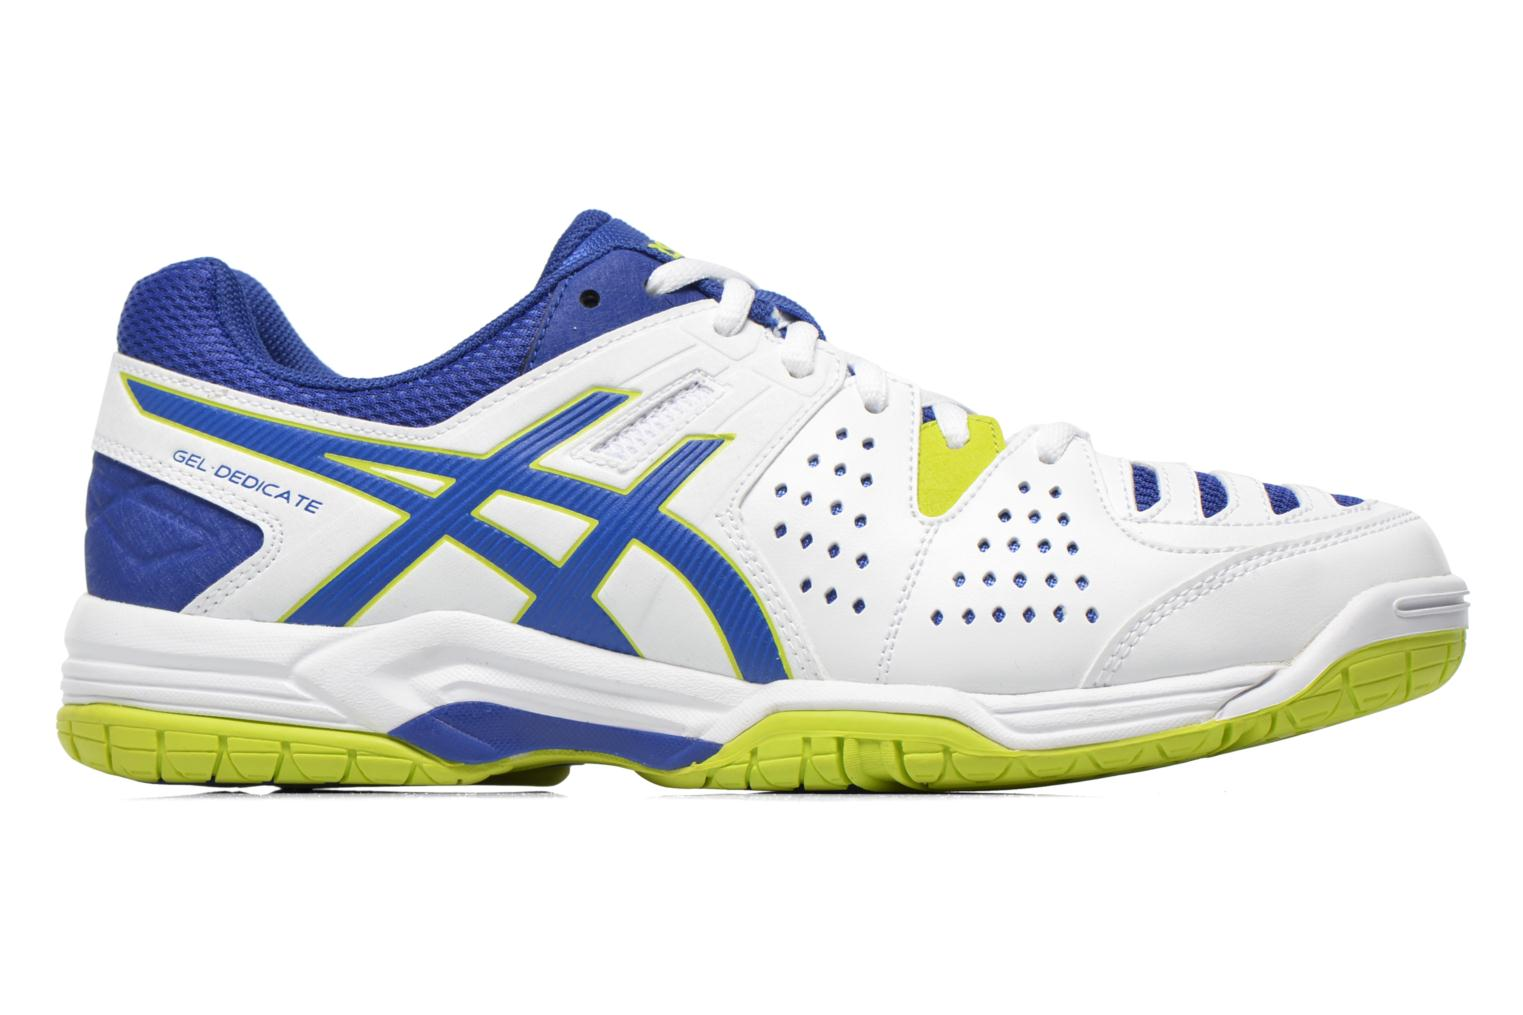 Gel-Dedicate 4 White/Asics Blue/Lime